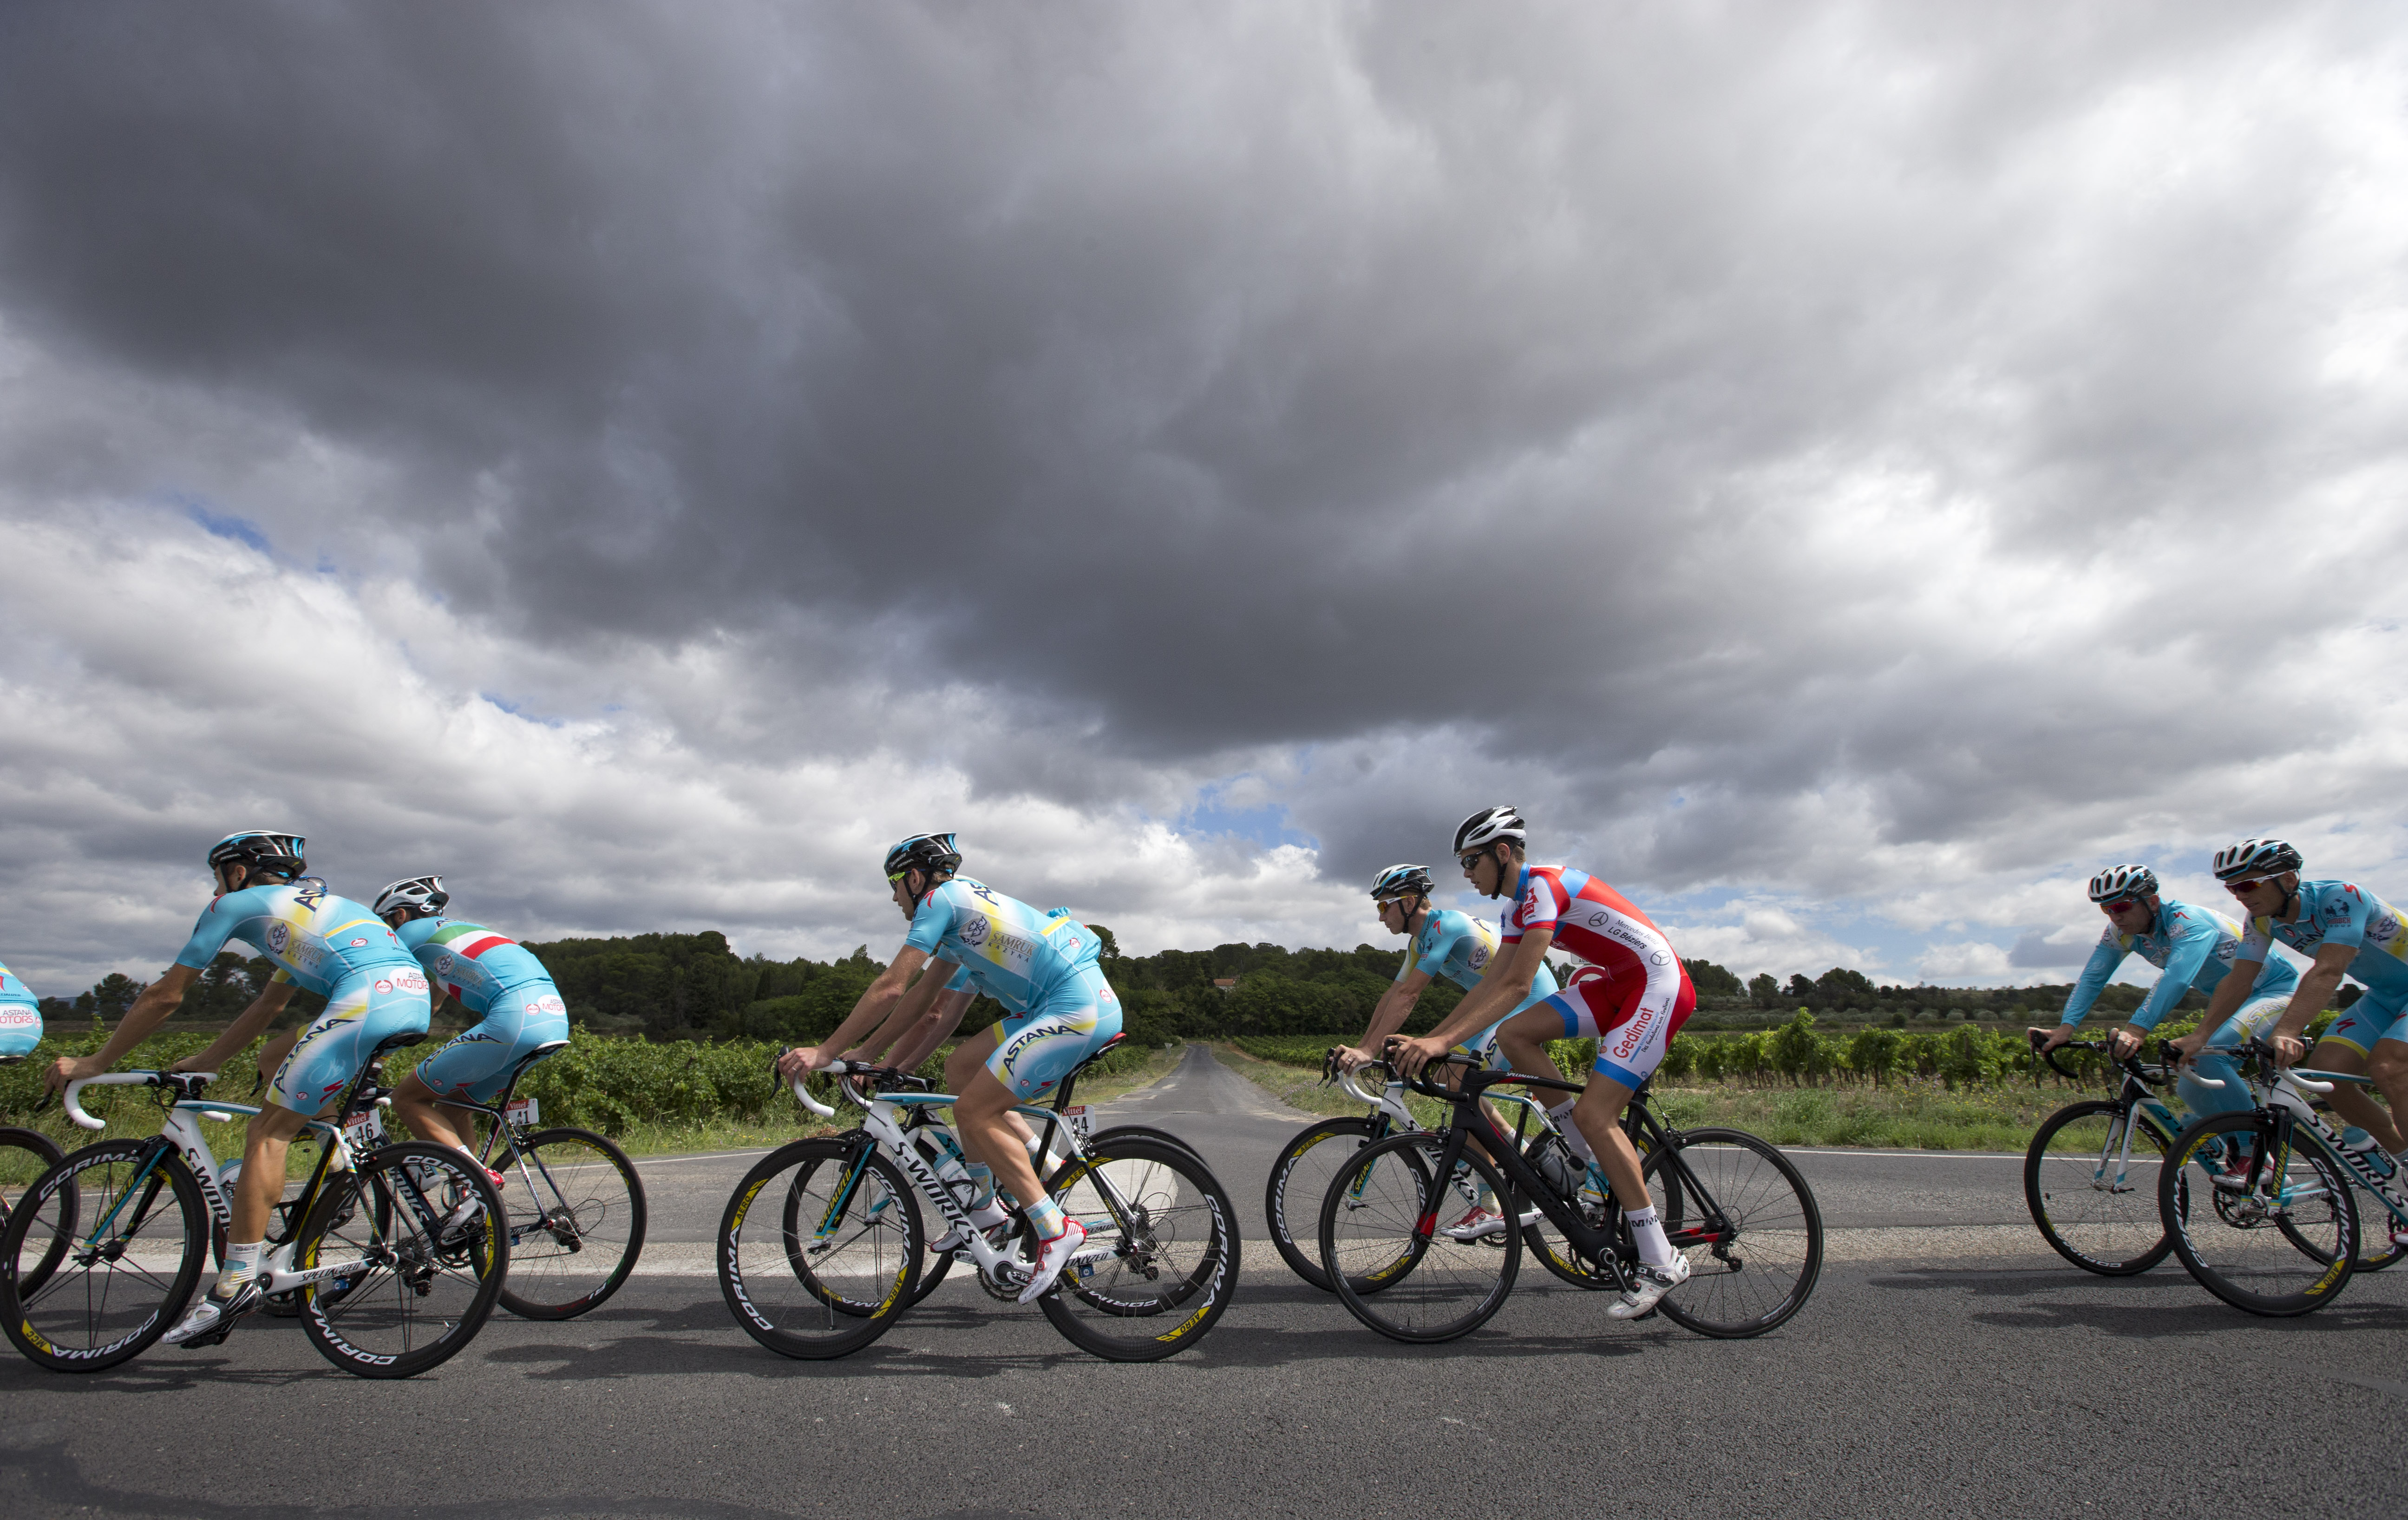 Team Astana with overall leader Italy's Vincenzo Nibali, second left with the Italian flag on his jersey, trains on the second rest day of the Tour de France.